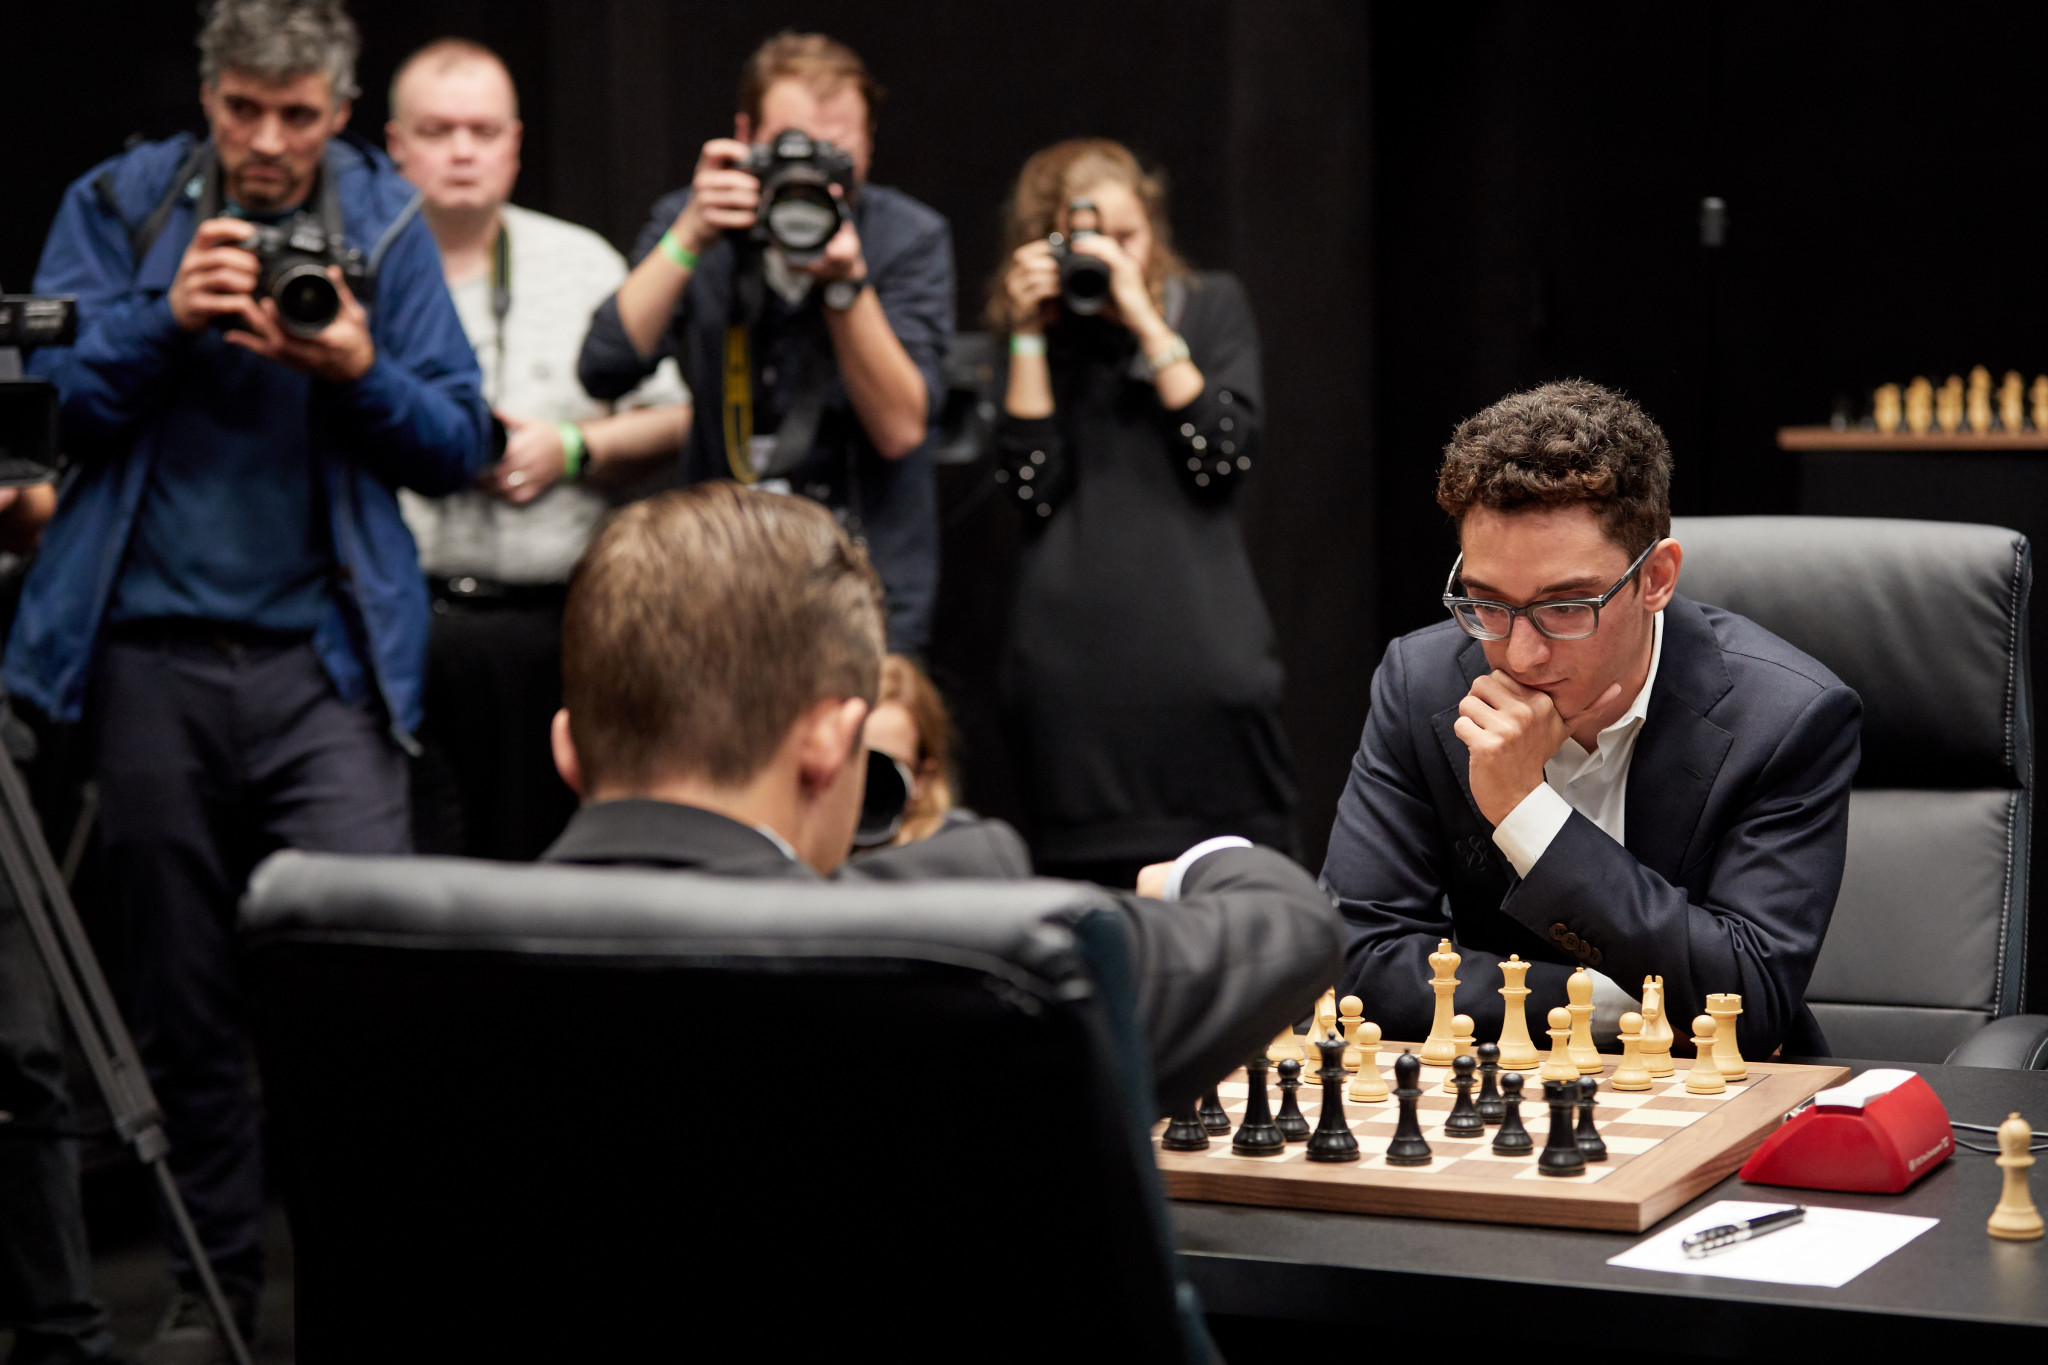 Fifth draw for Carlsen and Caruana as defending women's world chess champion Ju closes on final